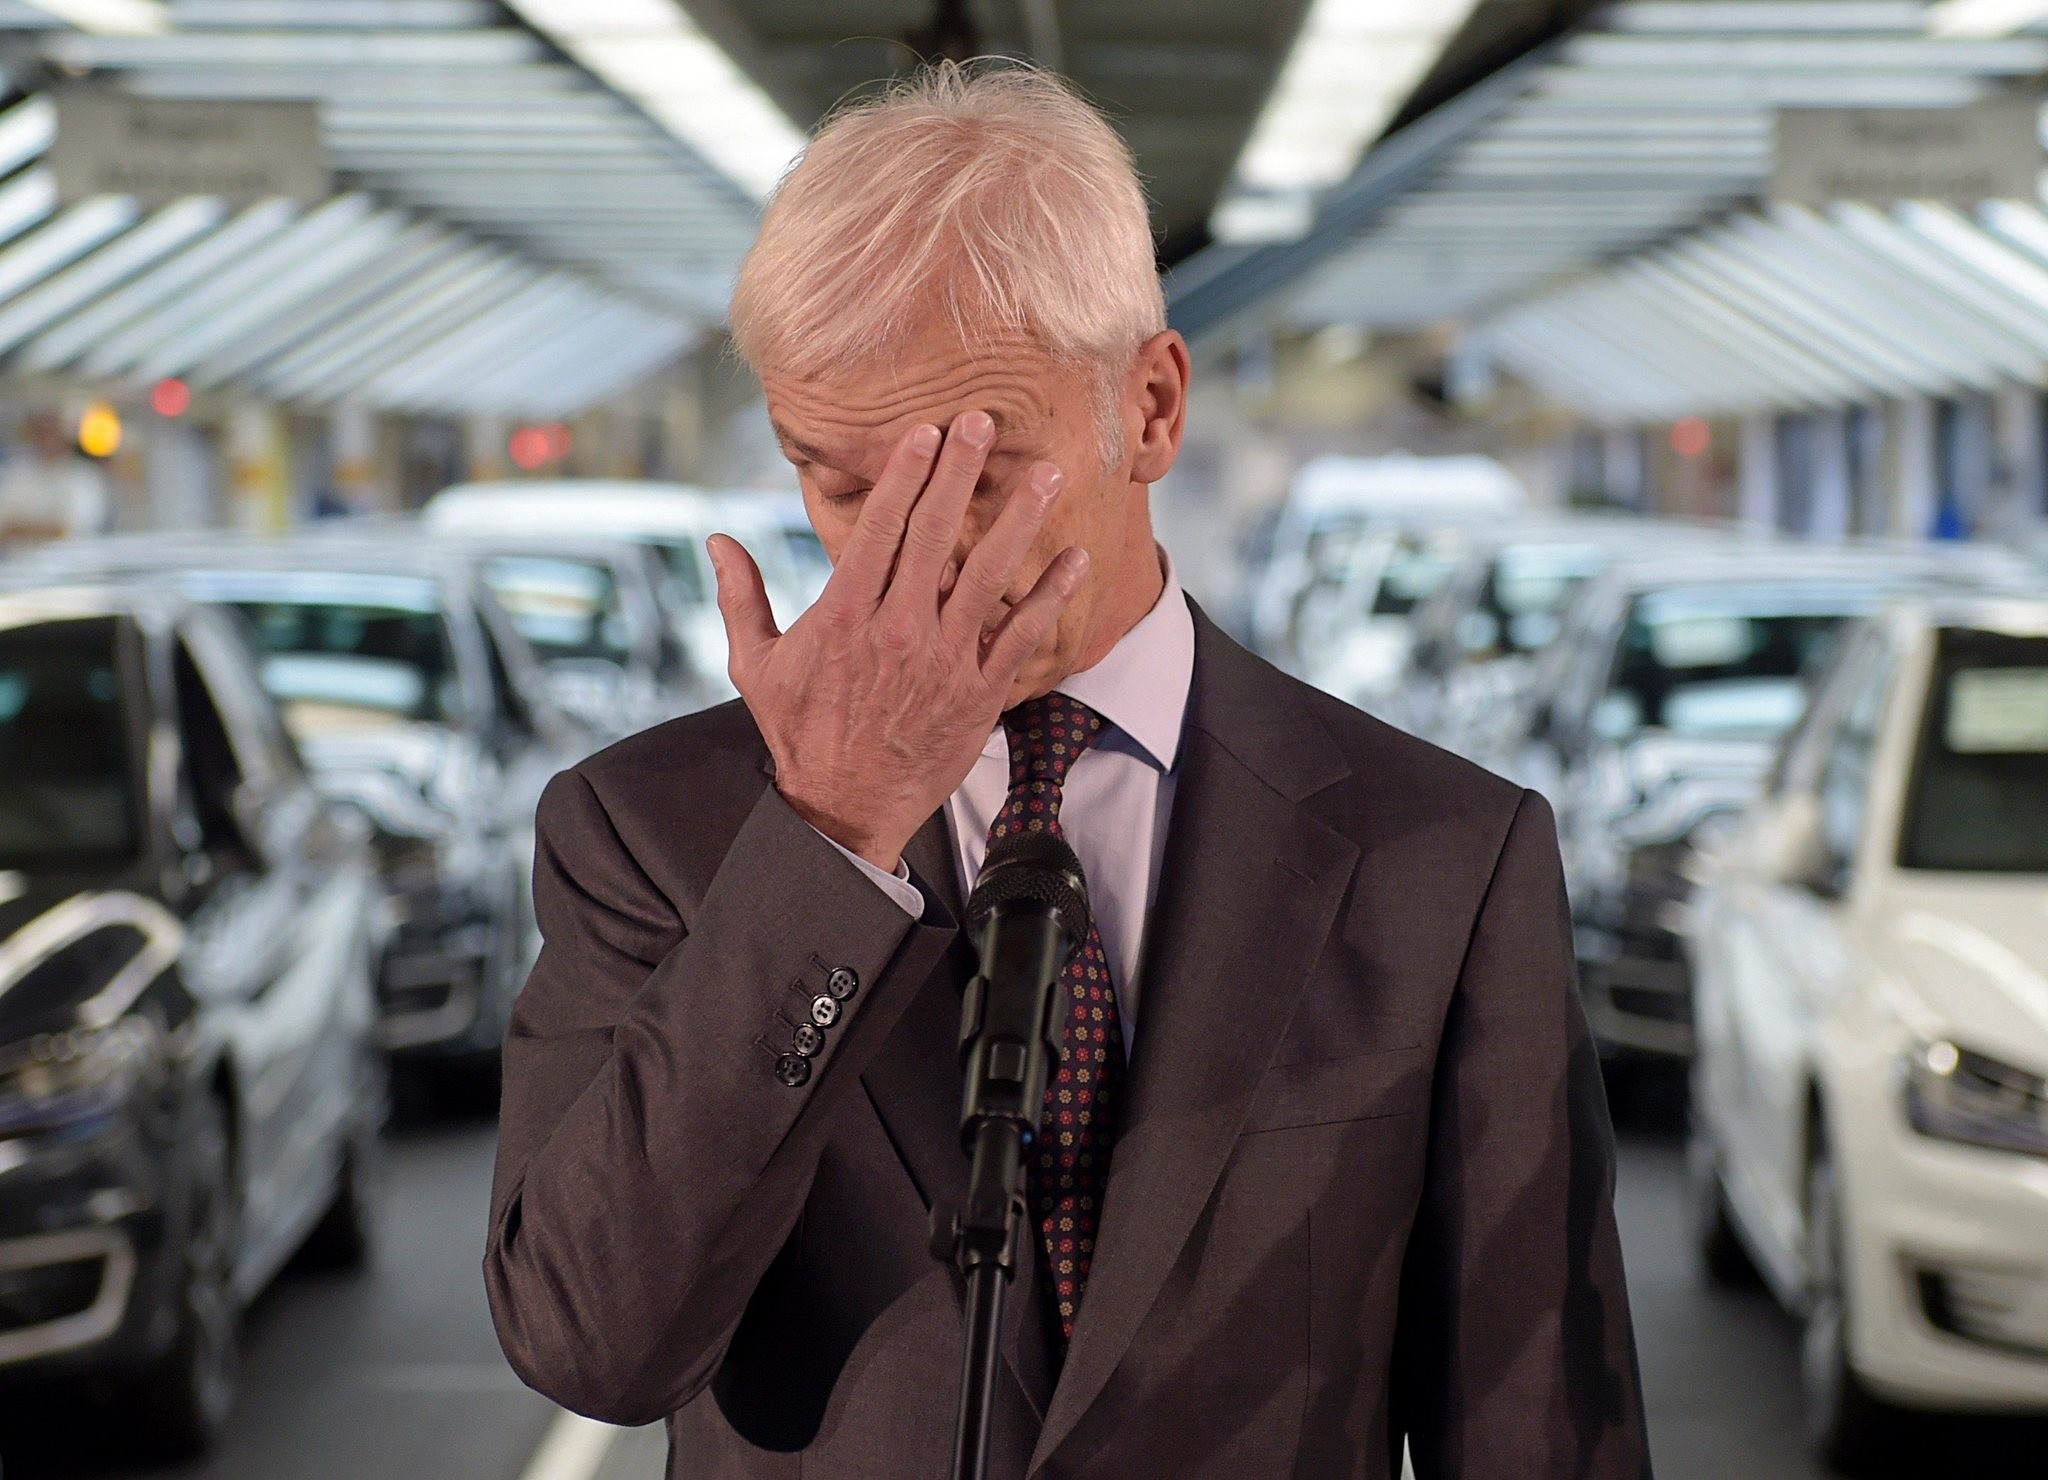 Matthias Mueller, CEO of German car maker Volkswagen, gestures while addressing journalists after visiting an assembly line of the VW plant in Wolfsburg, central Germany, on Oct. 21, 2015.